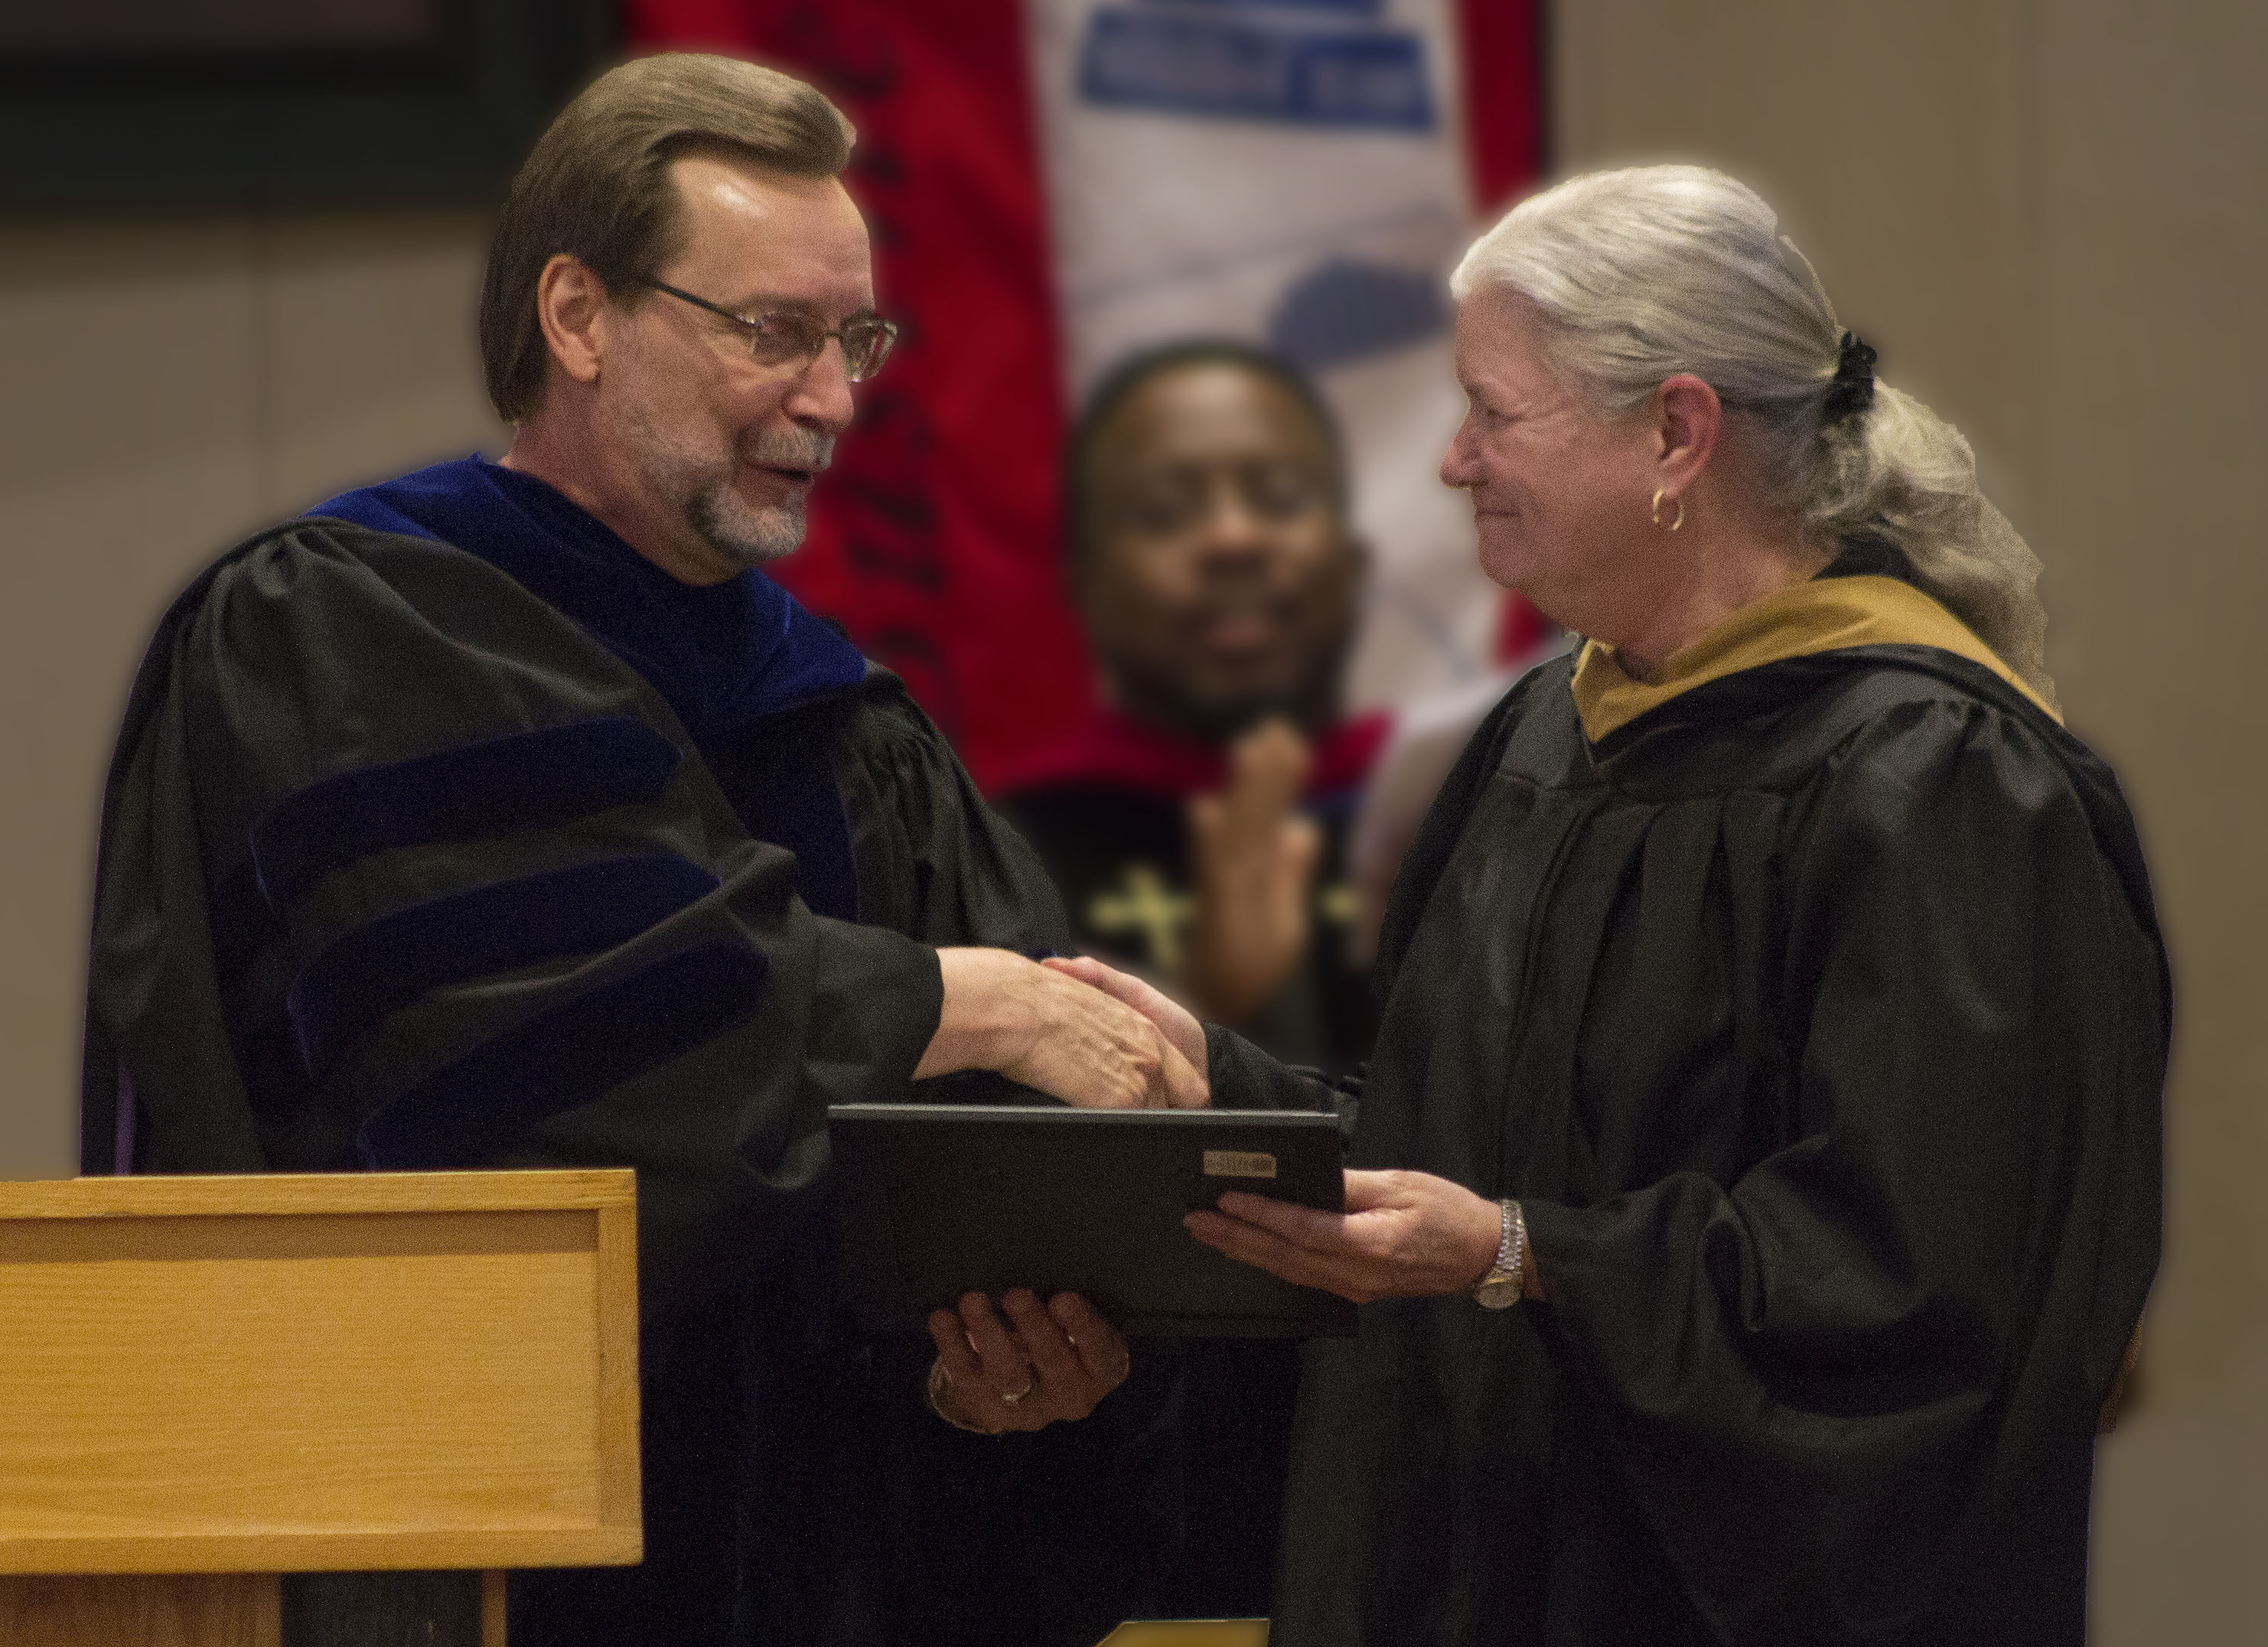 Bacone College's Executive Vice President and Dean of Faculty Dr. Robert K. Brown, left, presents Associate Professor Linda Strange with the Teacher of the Year award at Bacone's recent awards ceremony.